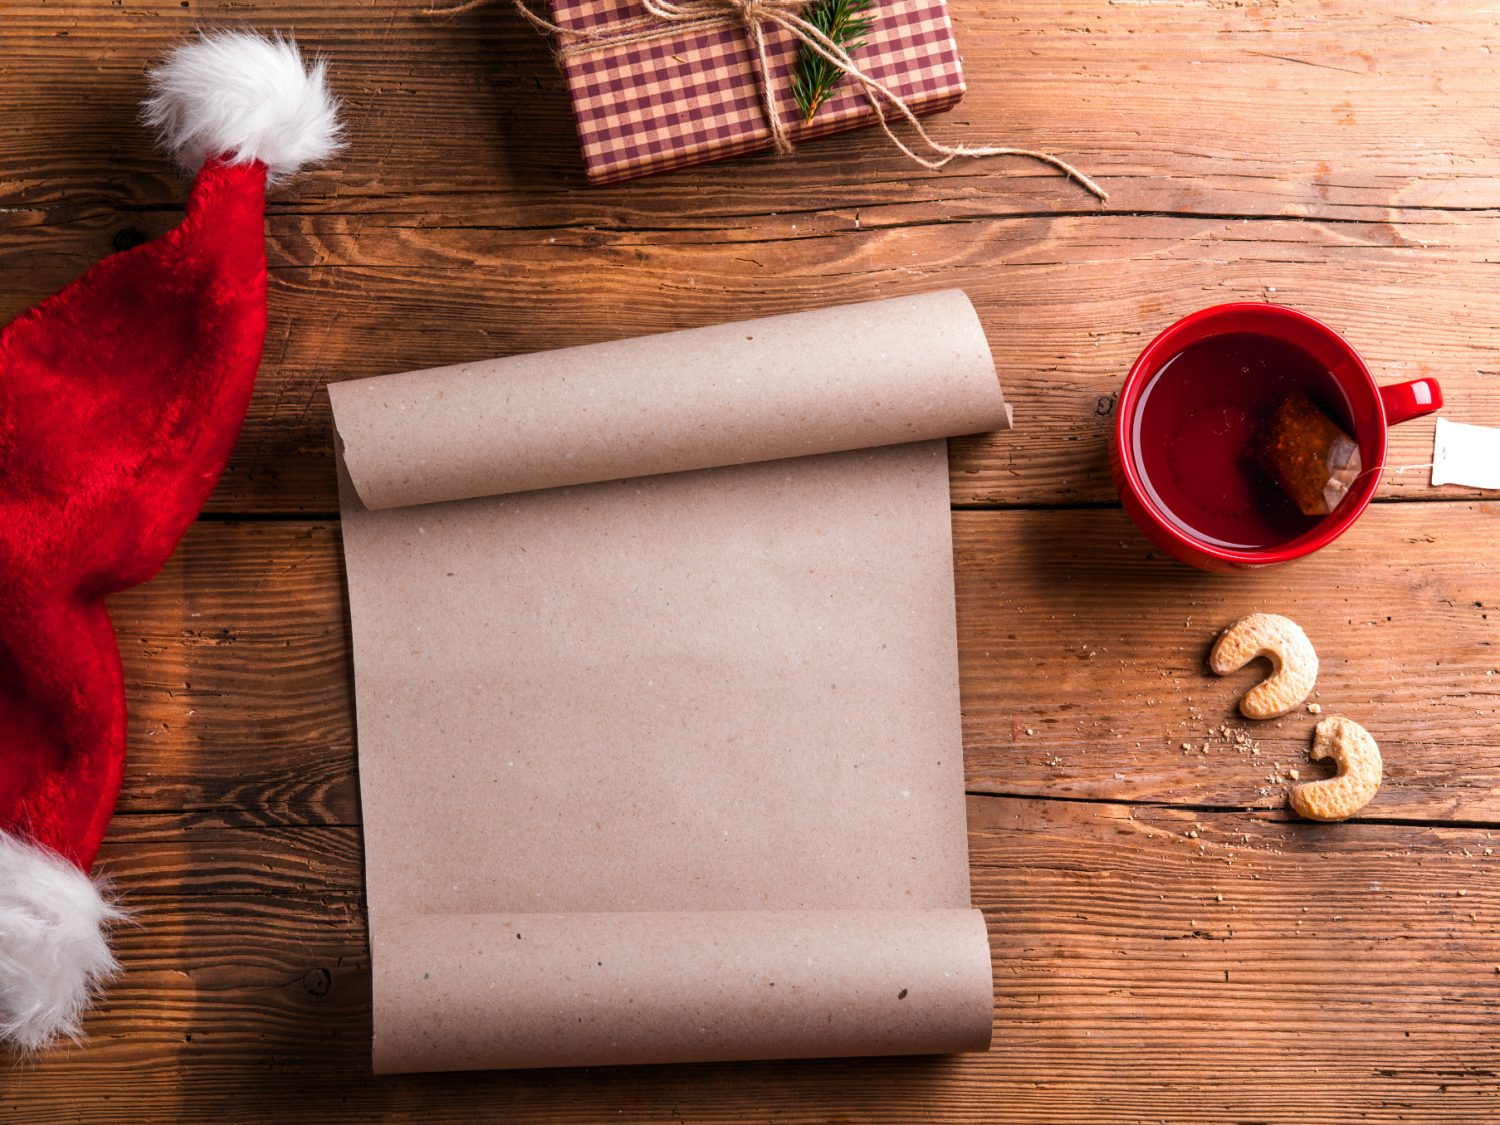 making a list for christmas on wooden background